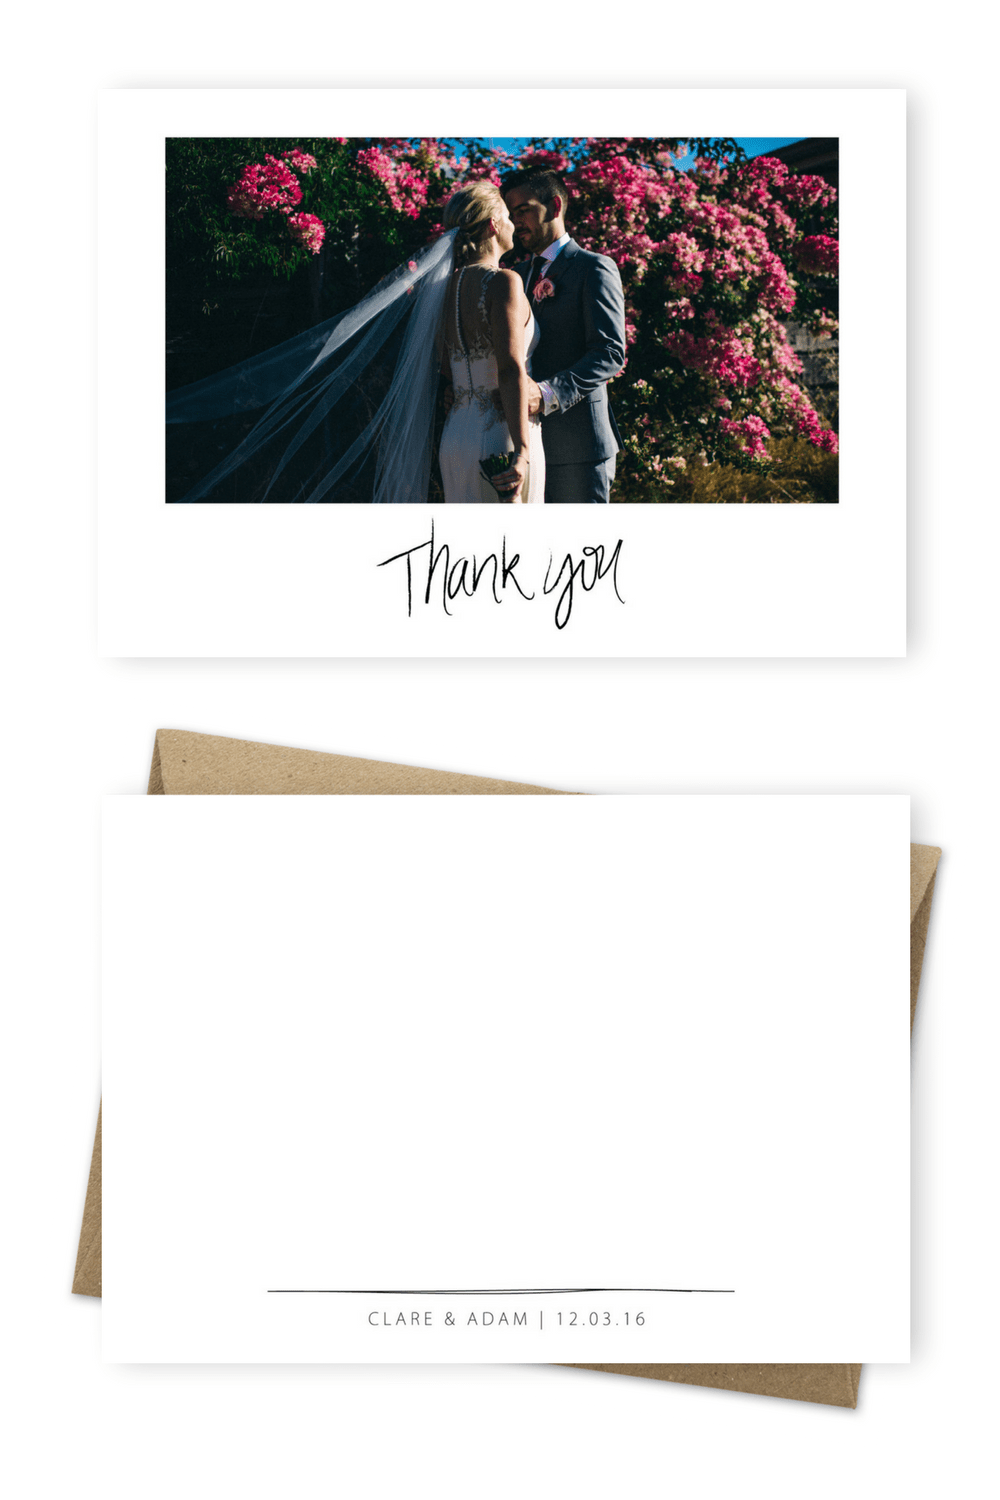 Floral Wedding Thank You Card For the Love of Stationery Courtney Illfield